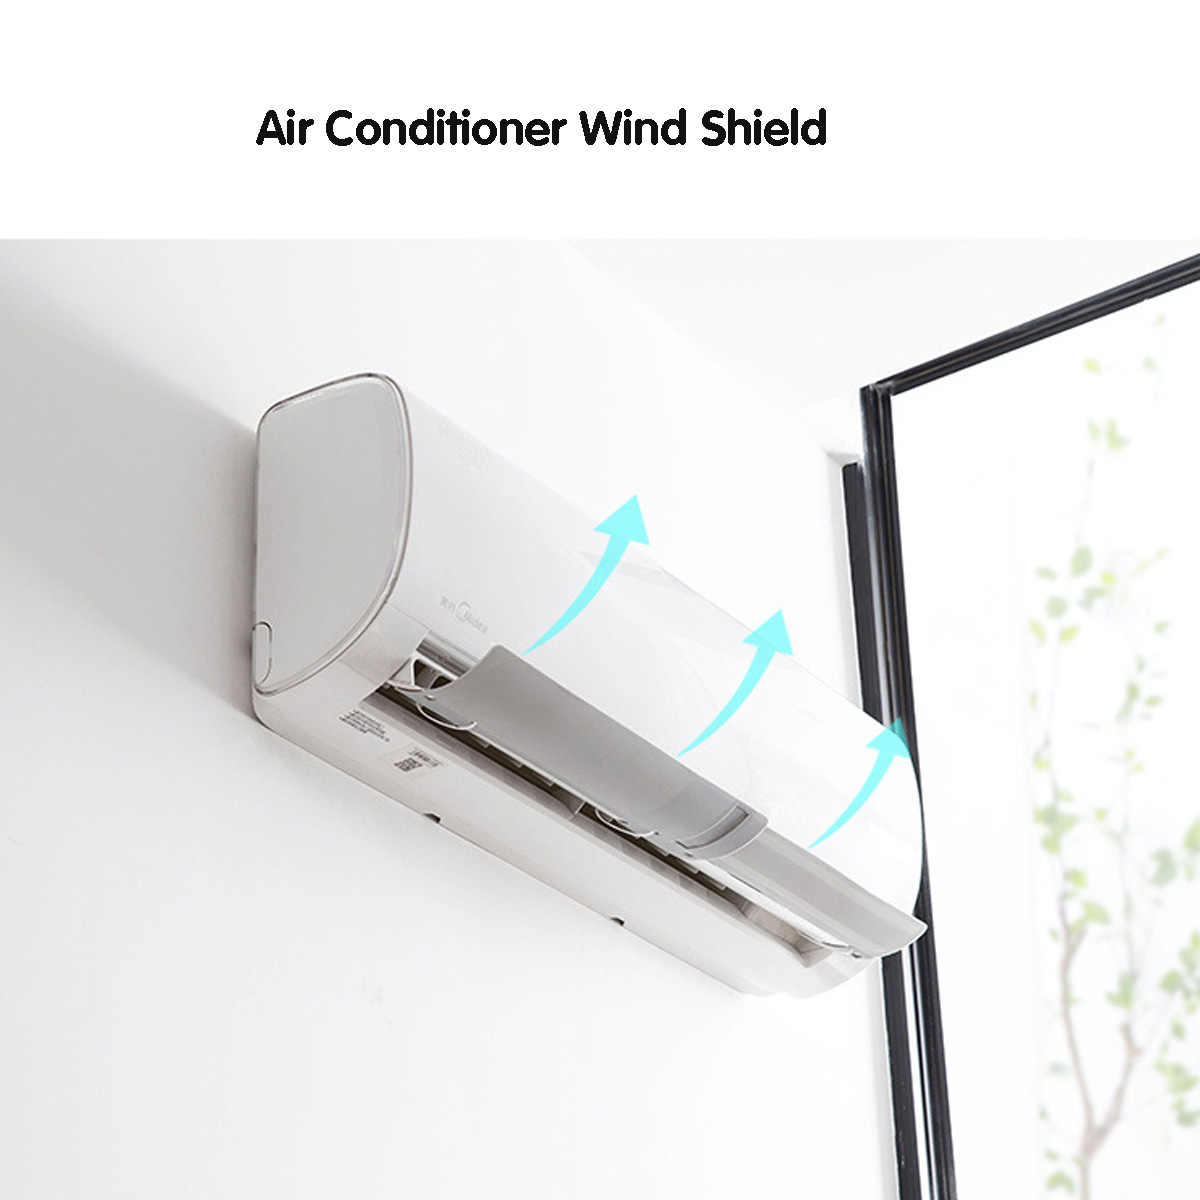 3Colors Clip Type Retractable Air Conditioning Wind Shield Air Conditioner Deflector Baffle Living room Bedroom Anti Direct Blow